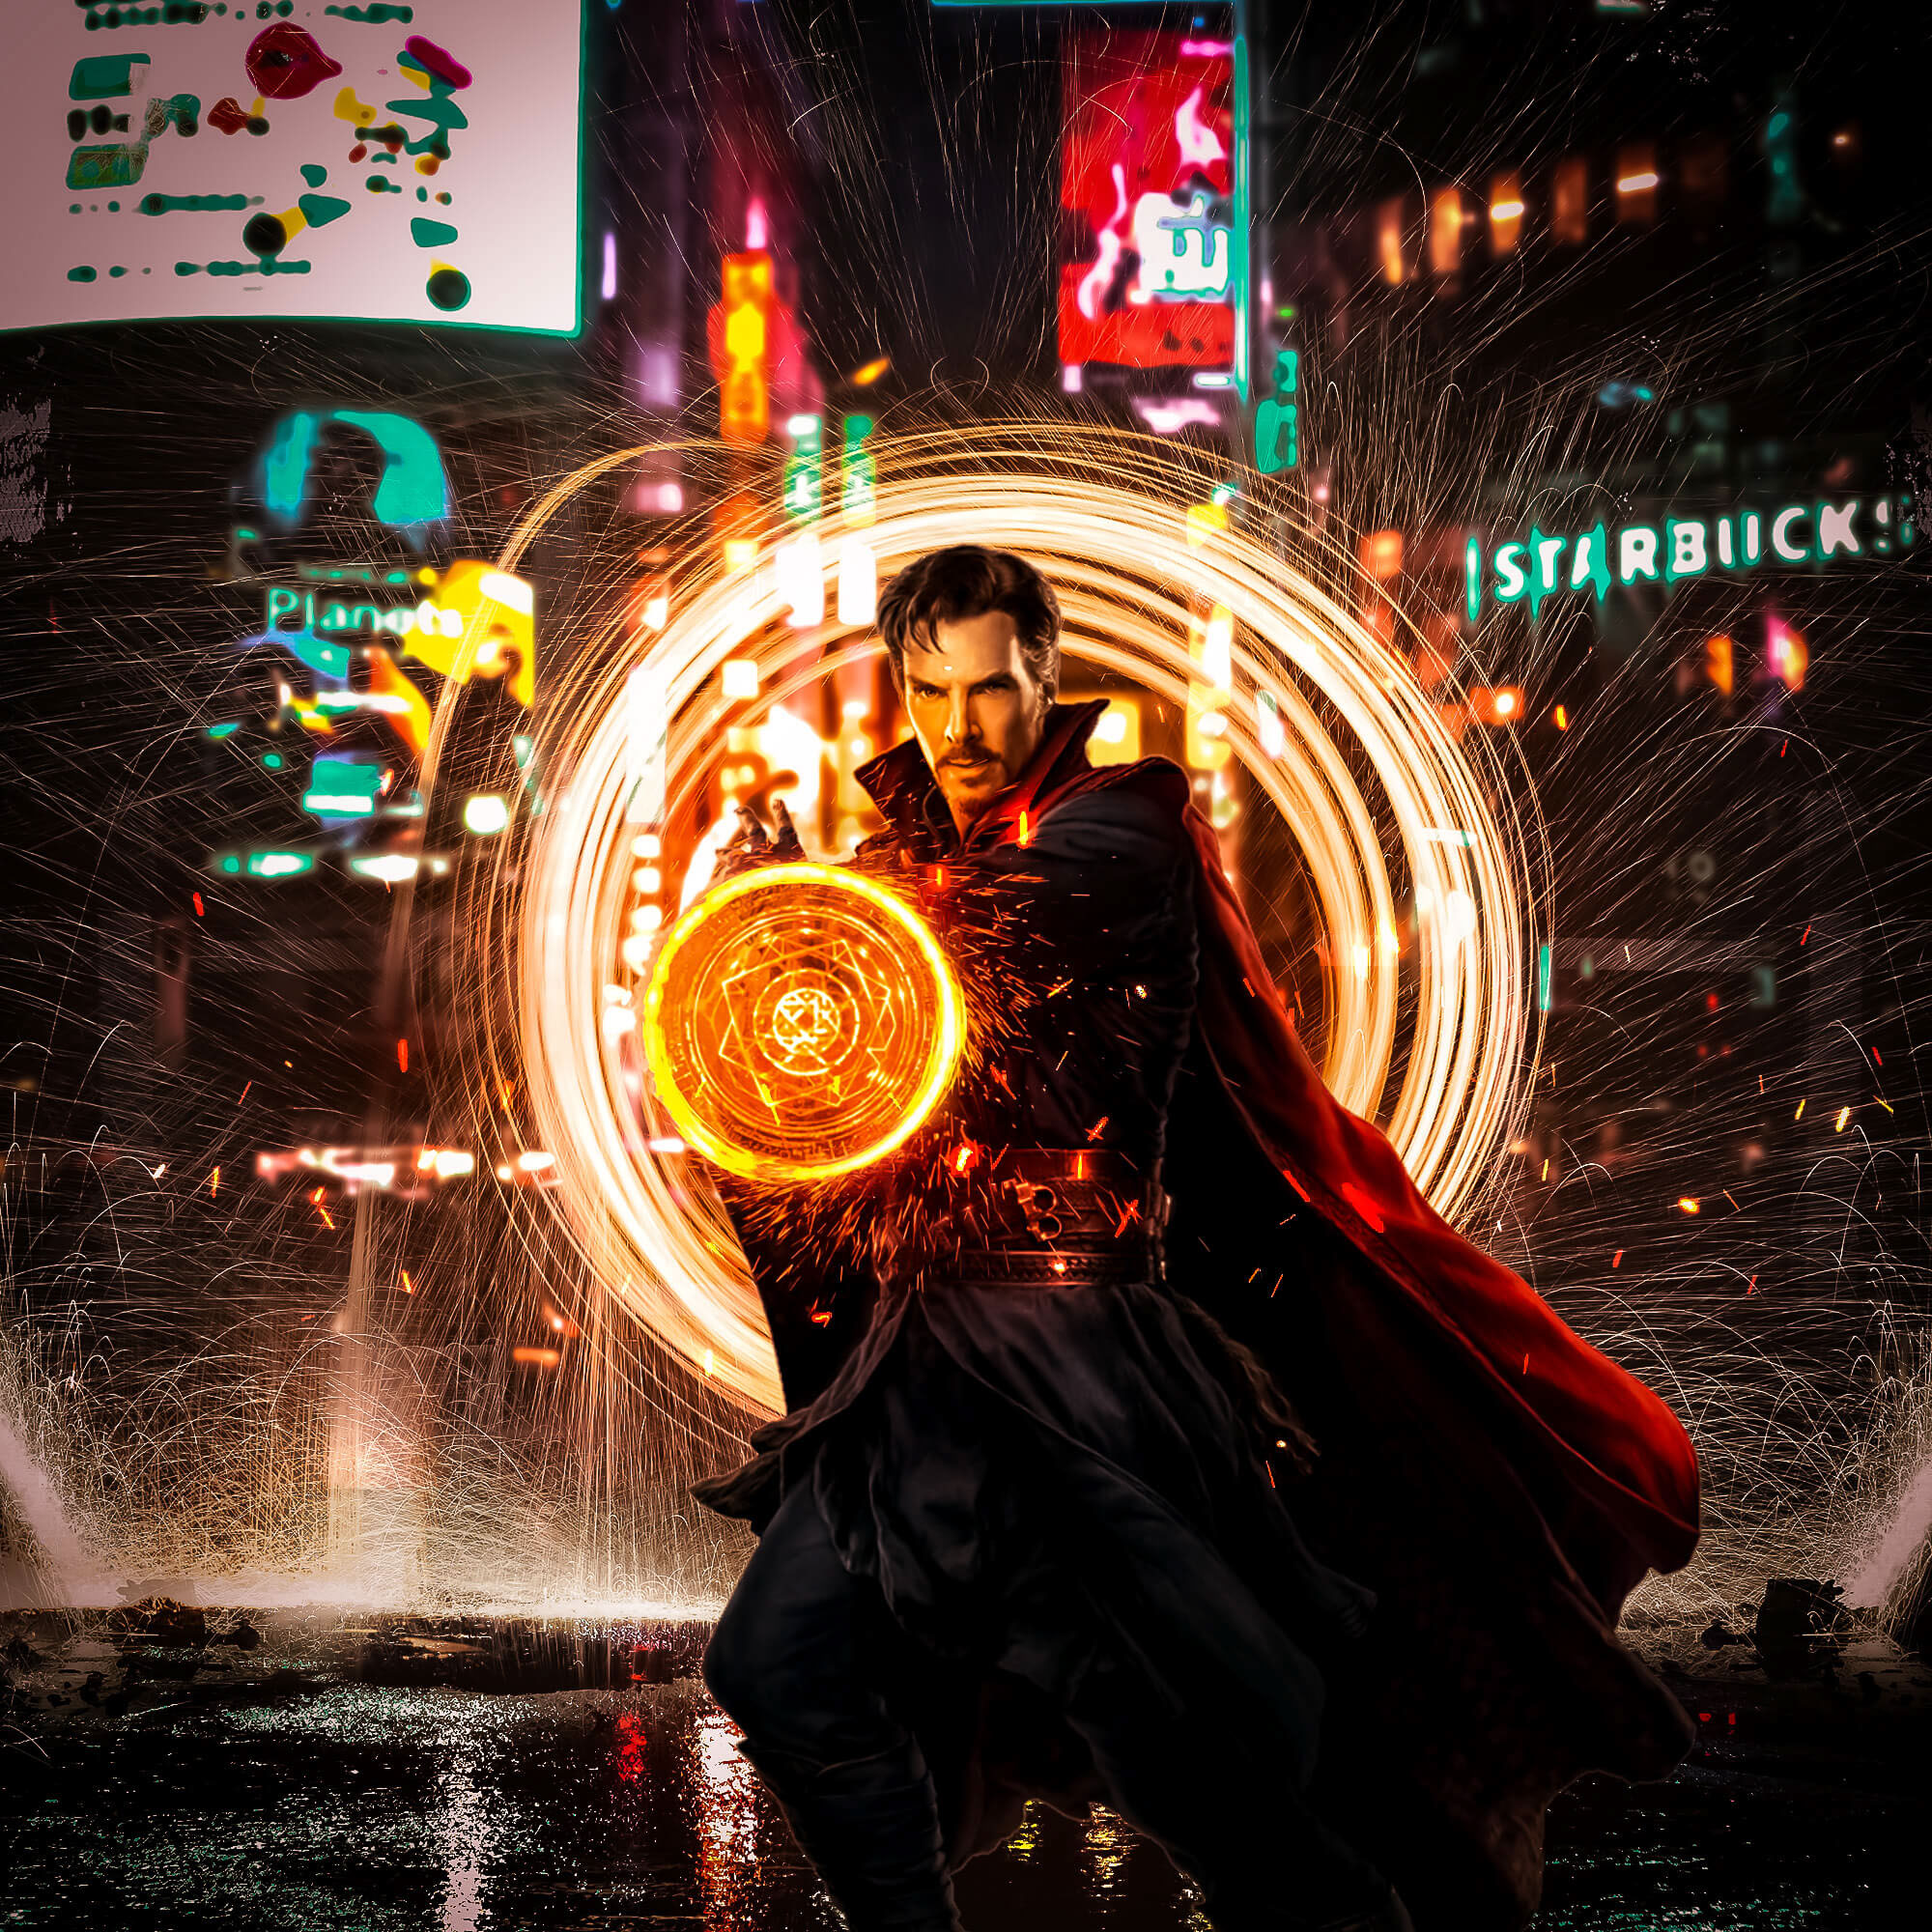 doctor strange opening portal art 4k 1547506655 - Doctor Strange Opening Portal Art 4k - superheroes wallpapers, hd-wallpapers, doctor strange wallpapers, digital art wallpapers, behance wallpapers, artwork wallpapers